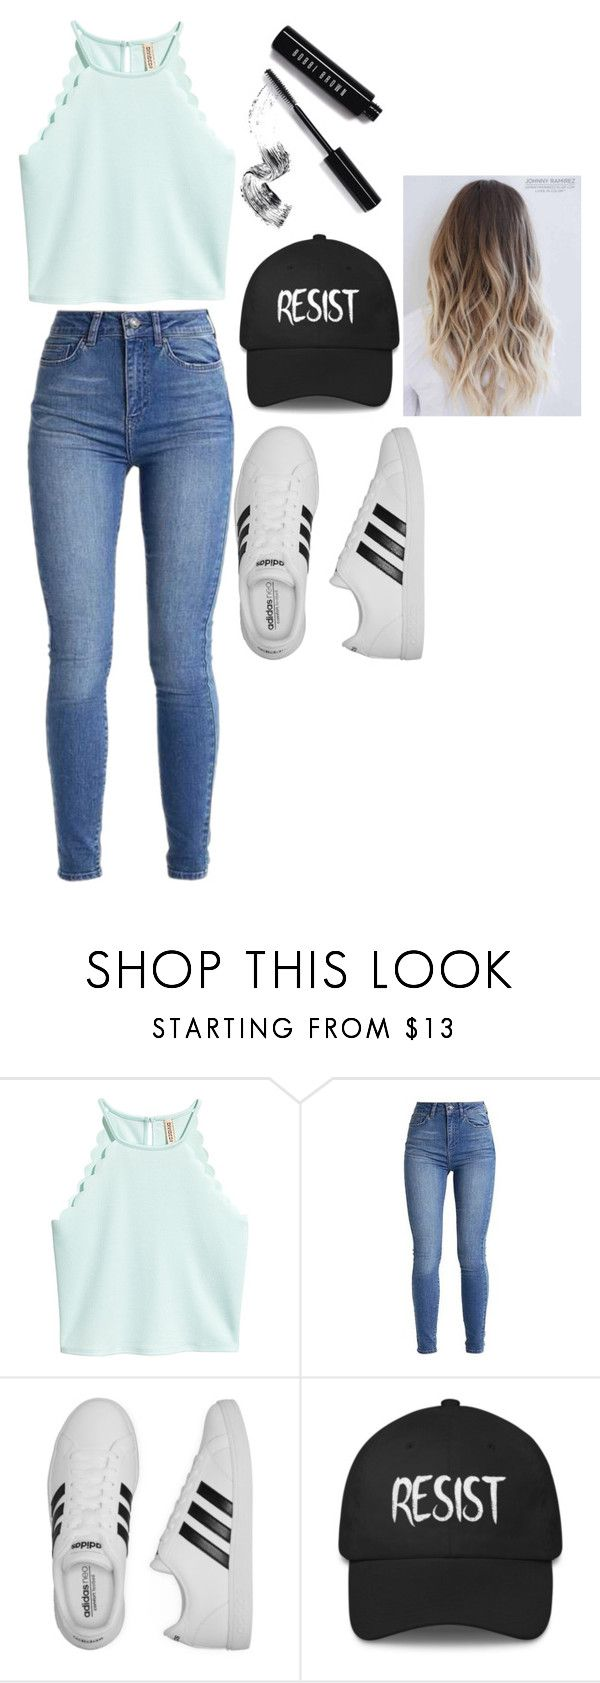 """Untitled #65"" by pichardogeorgina ❤ liked on Polyvore featuring adidas and Bobbi Brown Cosmetics"